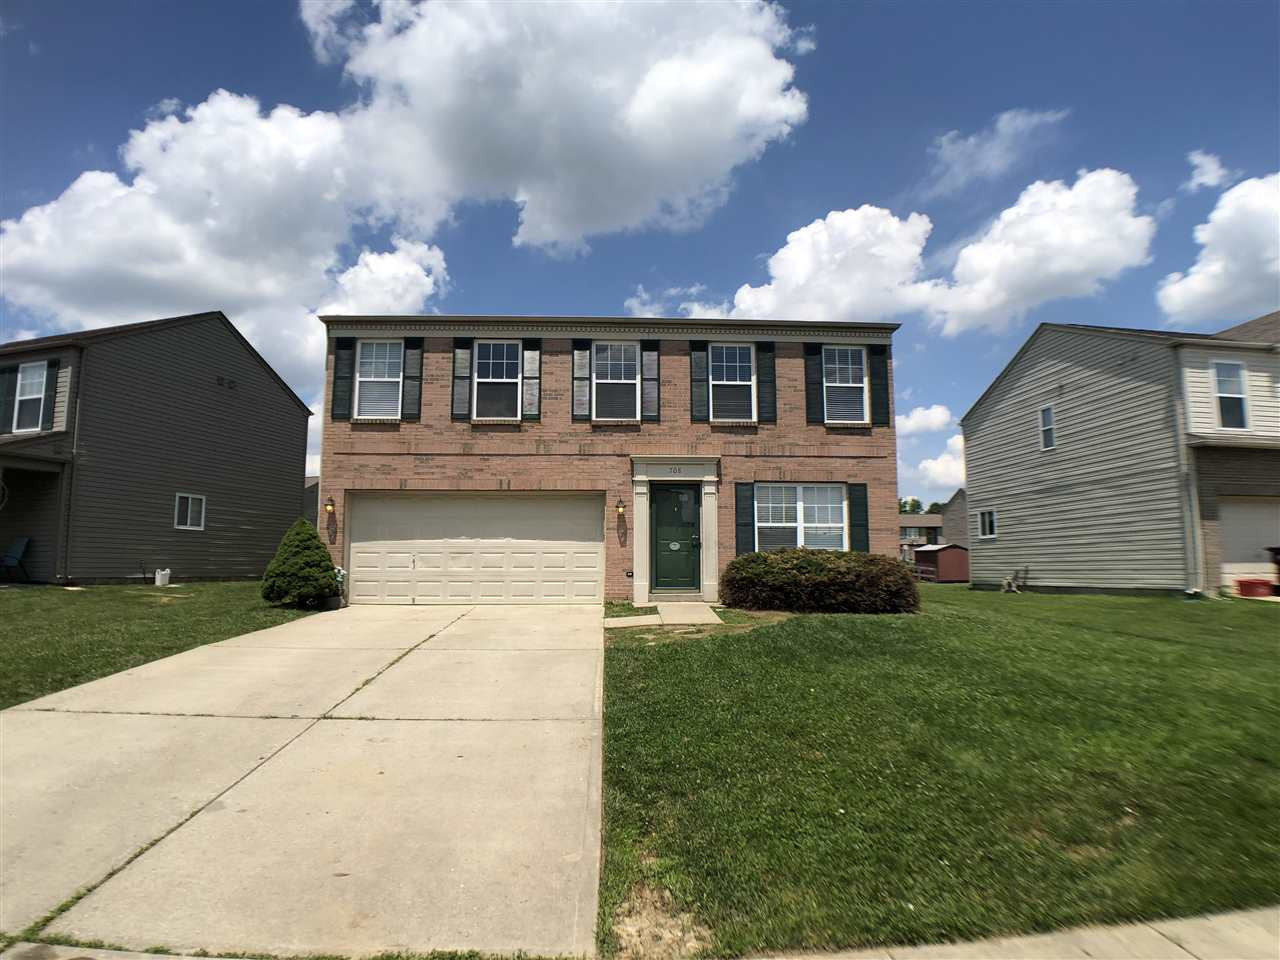 Photo 1 for 708 Berlander Dr Independence, KY 41051